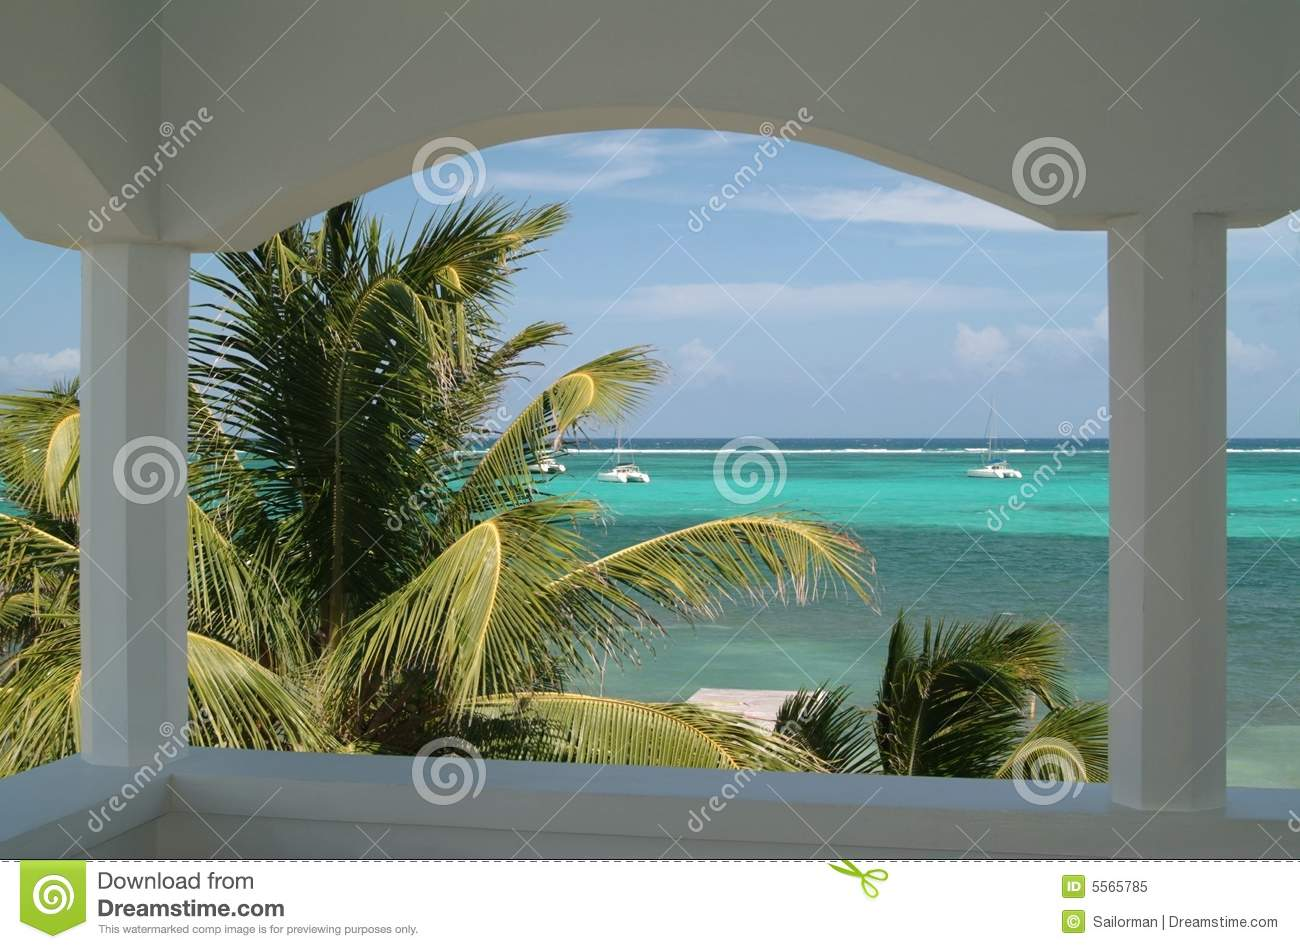 Caribbean Beach Scene With Palm Trees As Seen From A Hotel Balcony